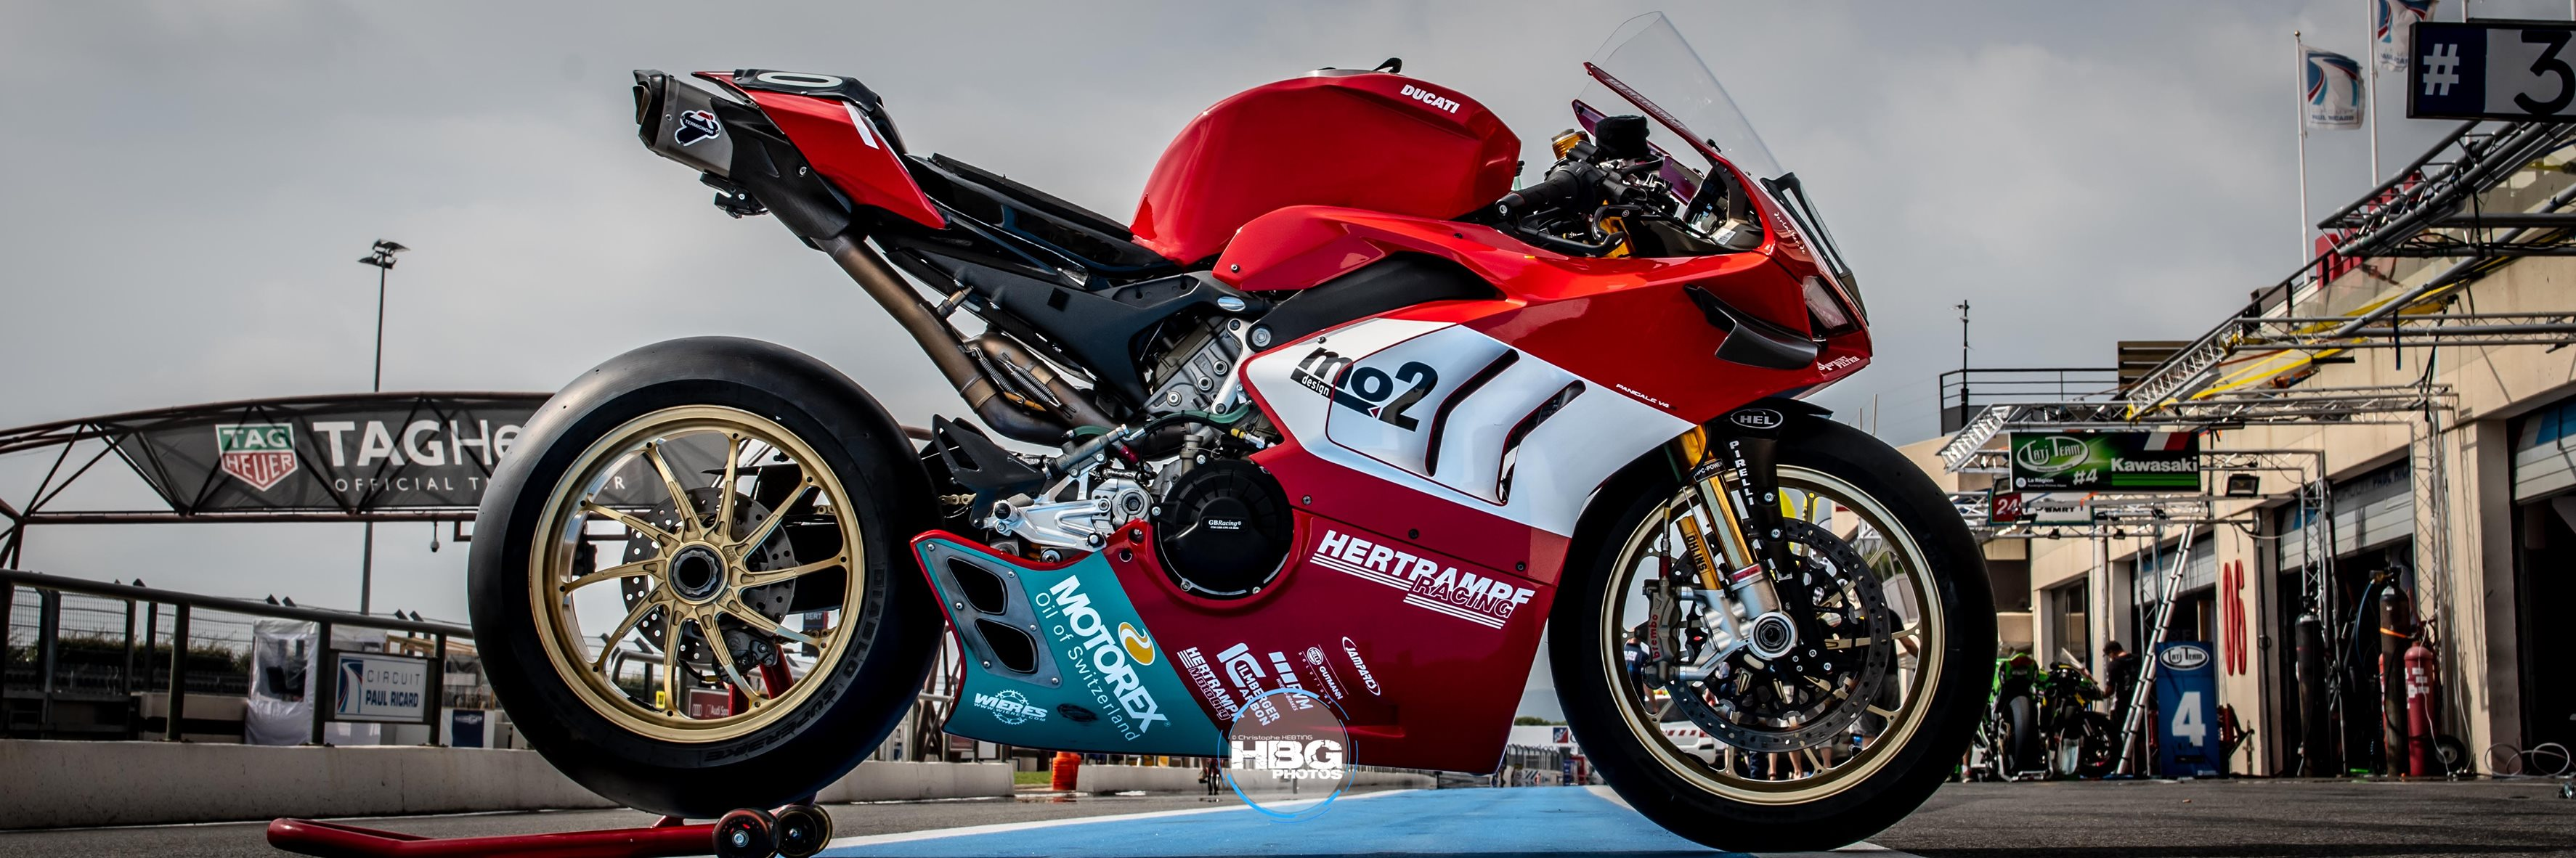 Ducati Panigale V4R Endurance Race First Year